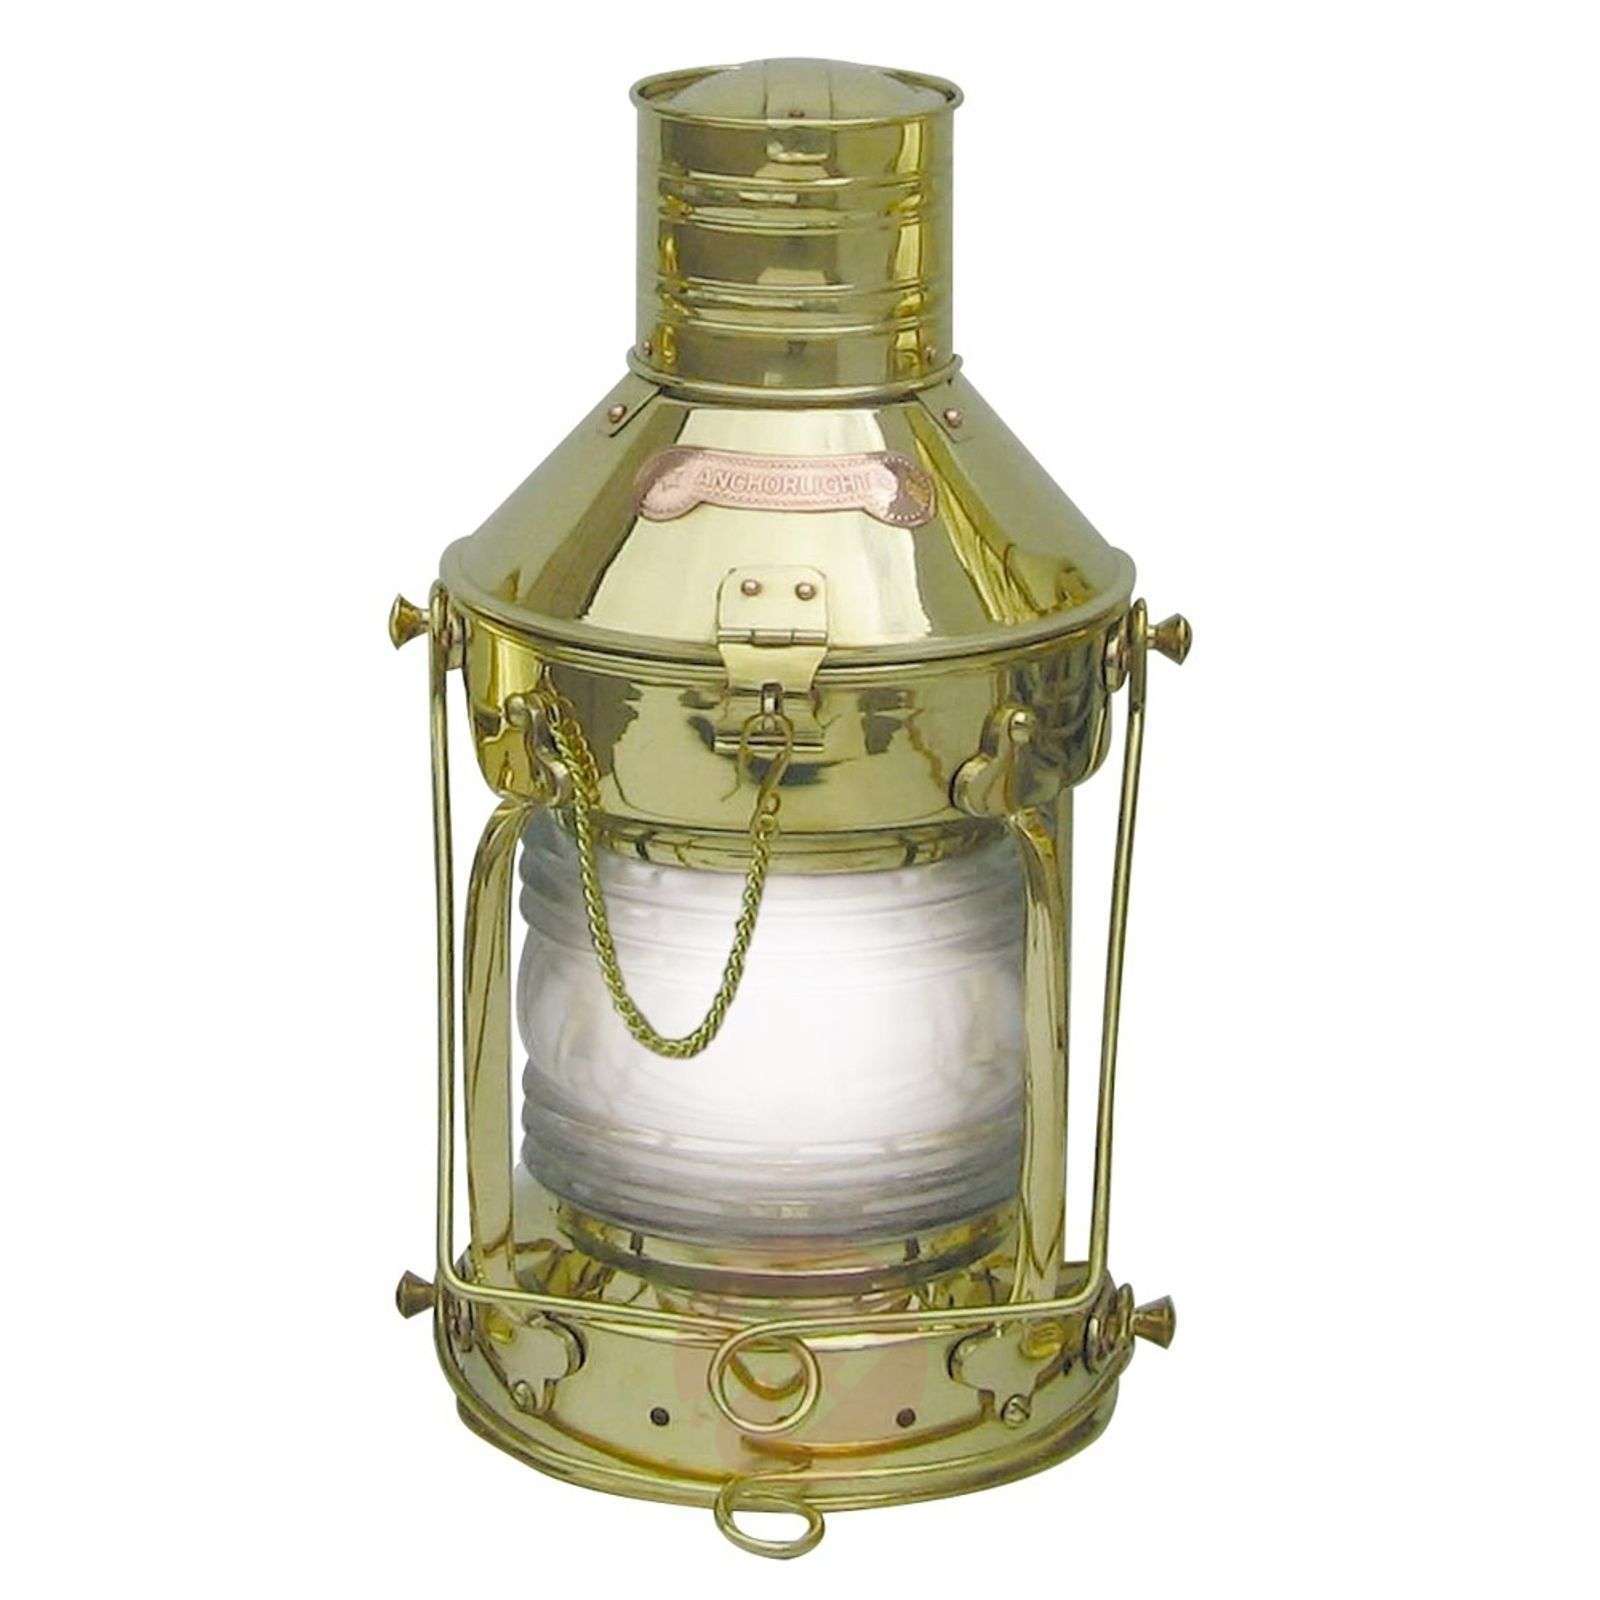 Electric decorative light Anker-8553039X-01